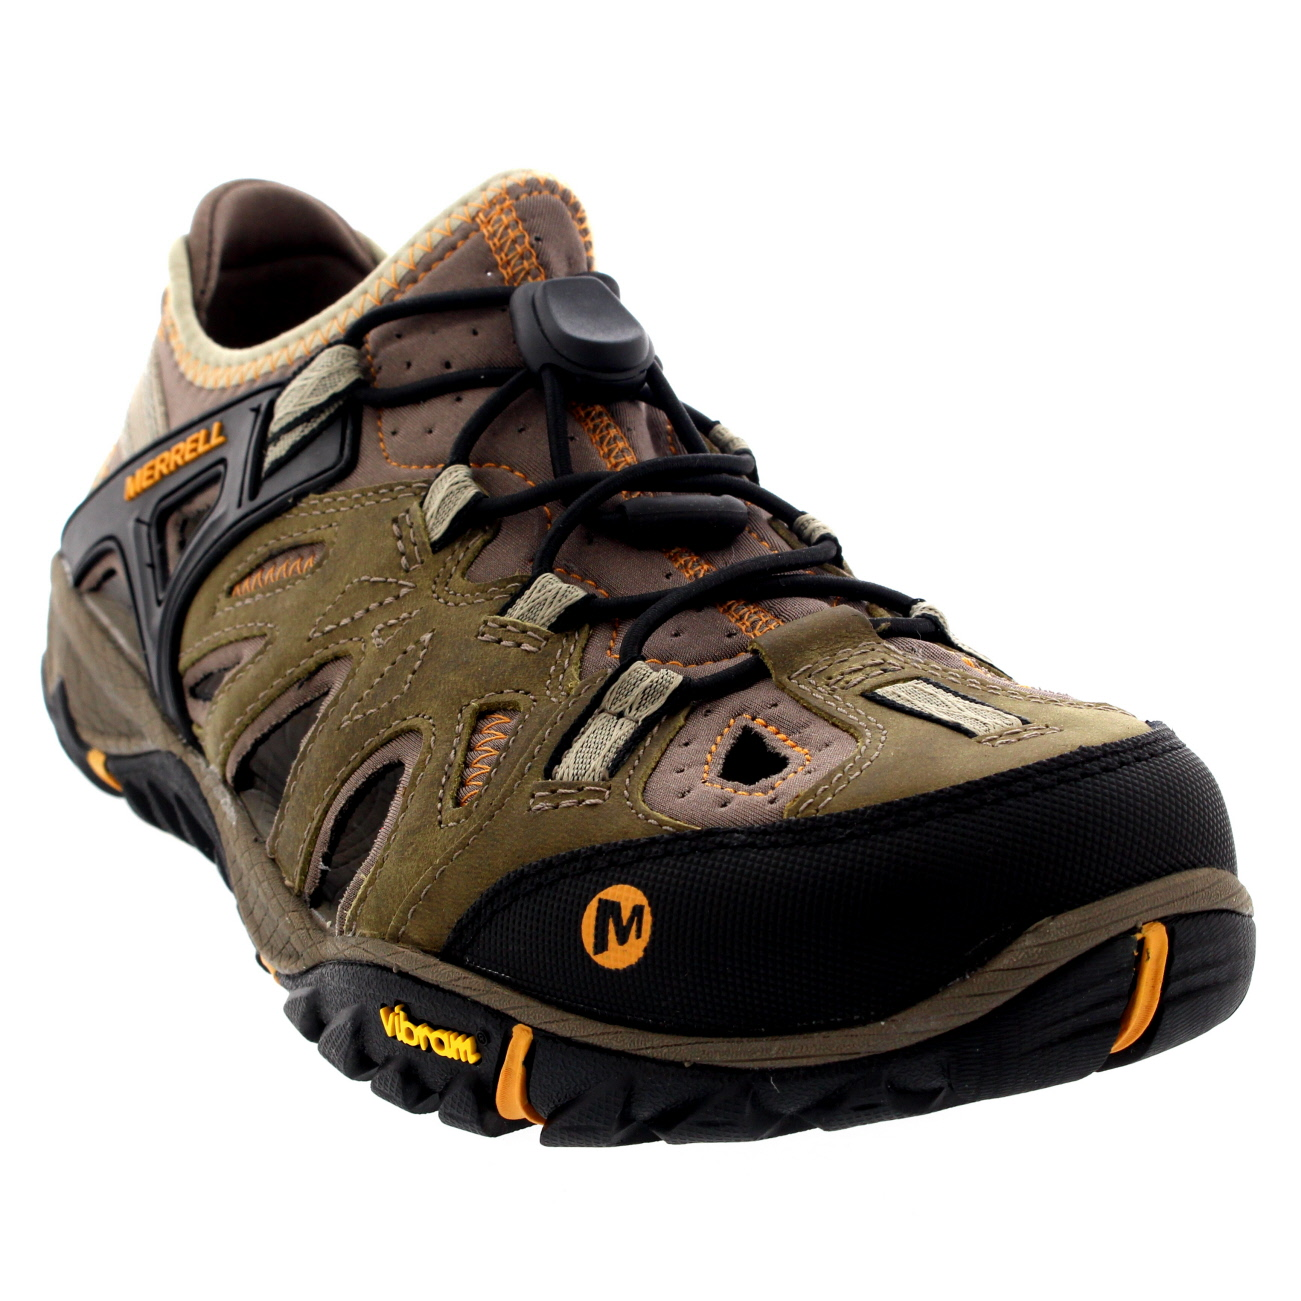 Merrell All out Blaze Sieve